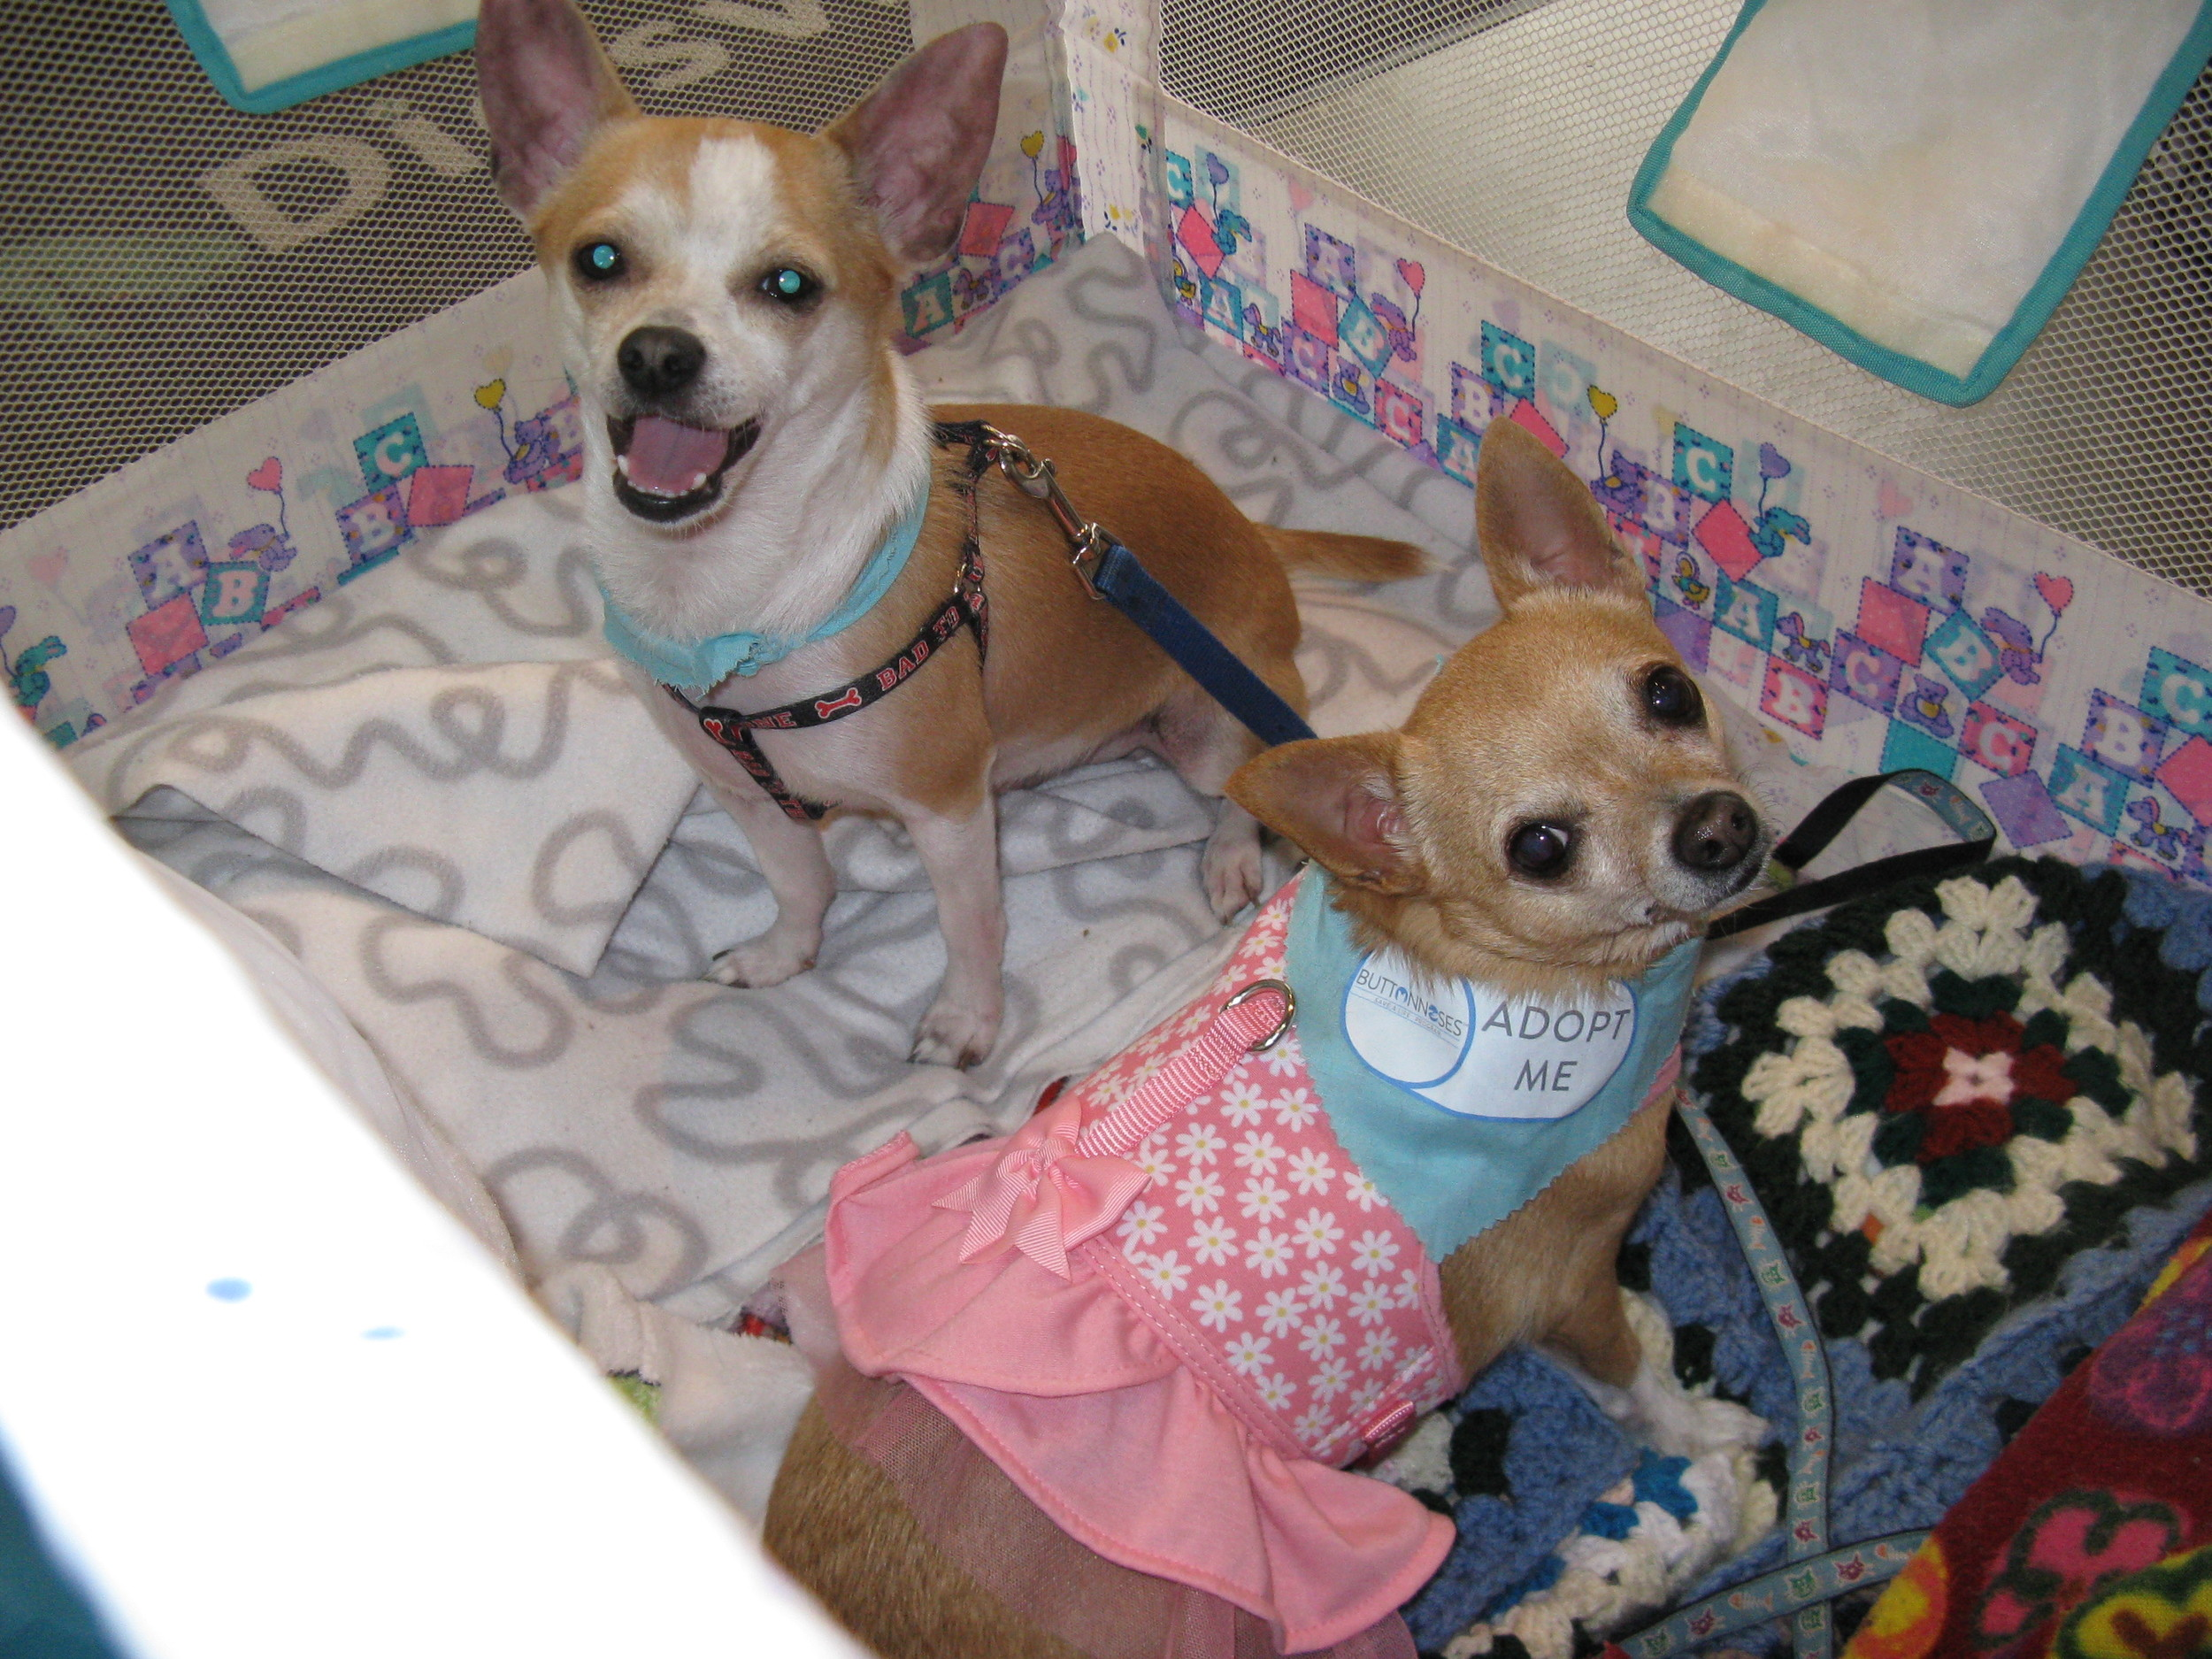 Sophie V and Ollie T hanging out at the adoption event